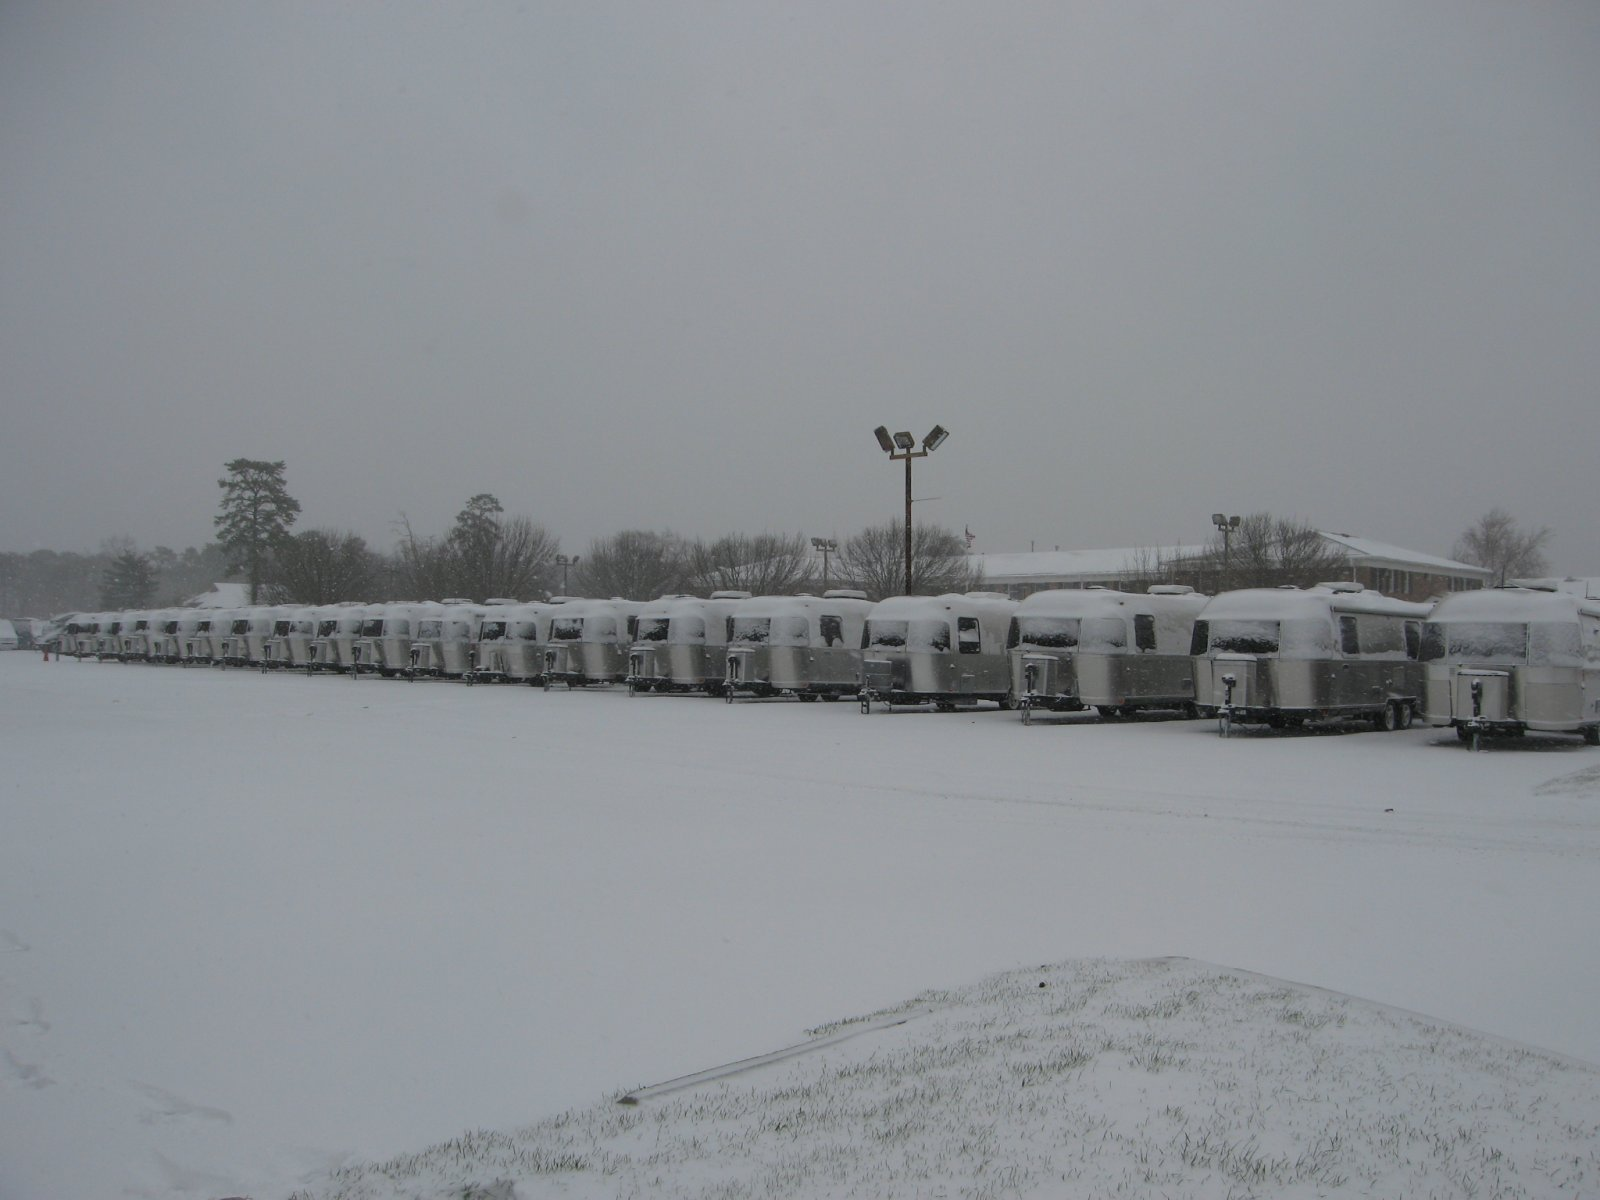 Click image for larger version  Name:snow 001.jpg Views:157 Size:143.8 KB ID:154865